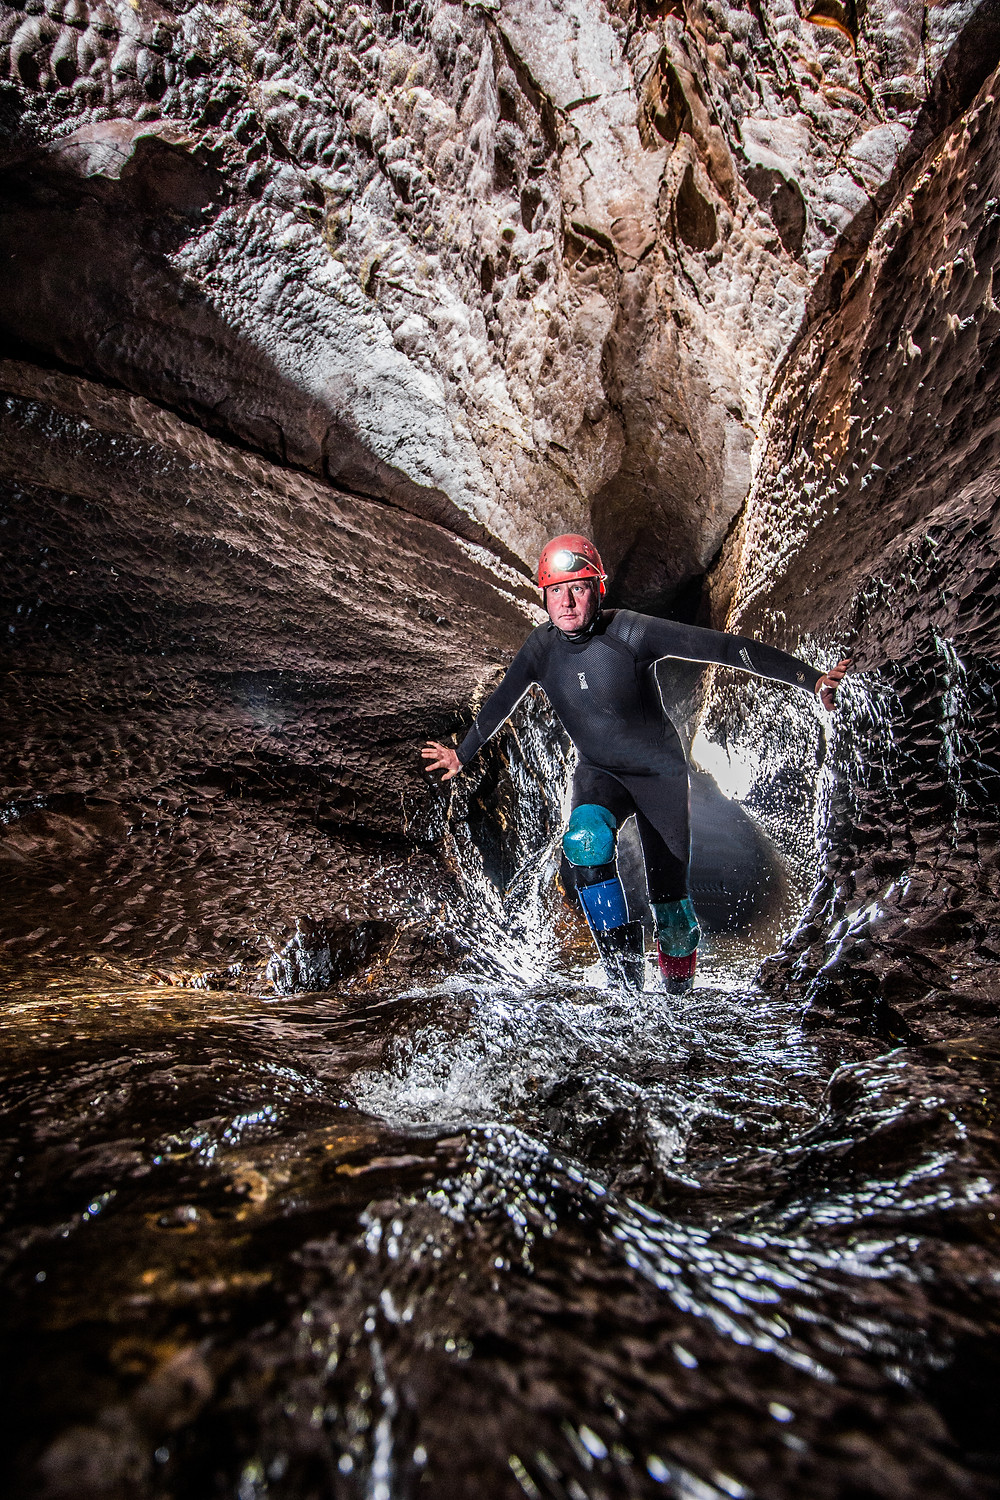 Richard Walker in Ogof Ffynnon Ddu, Wales. Image: Christine Grosart